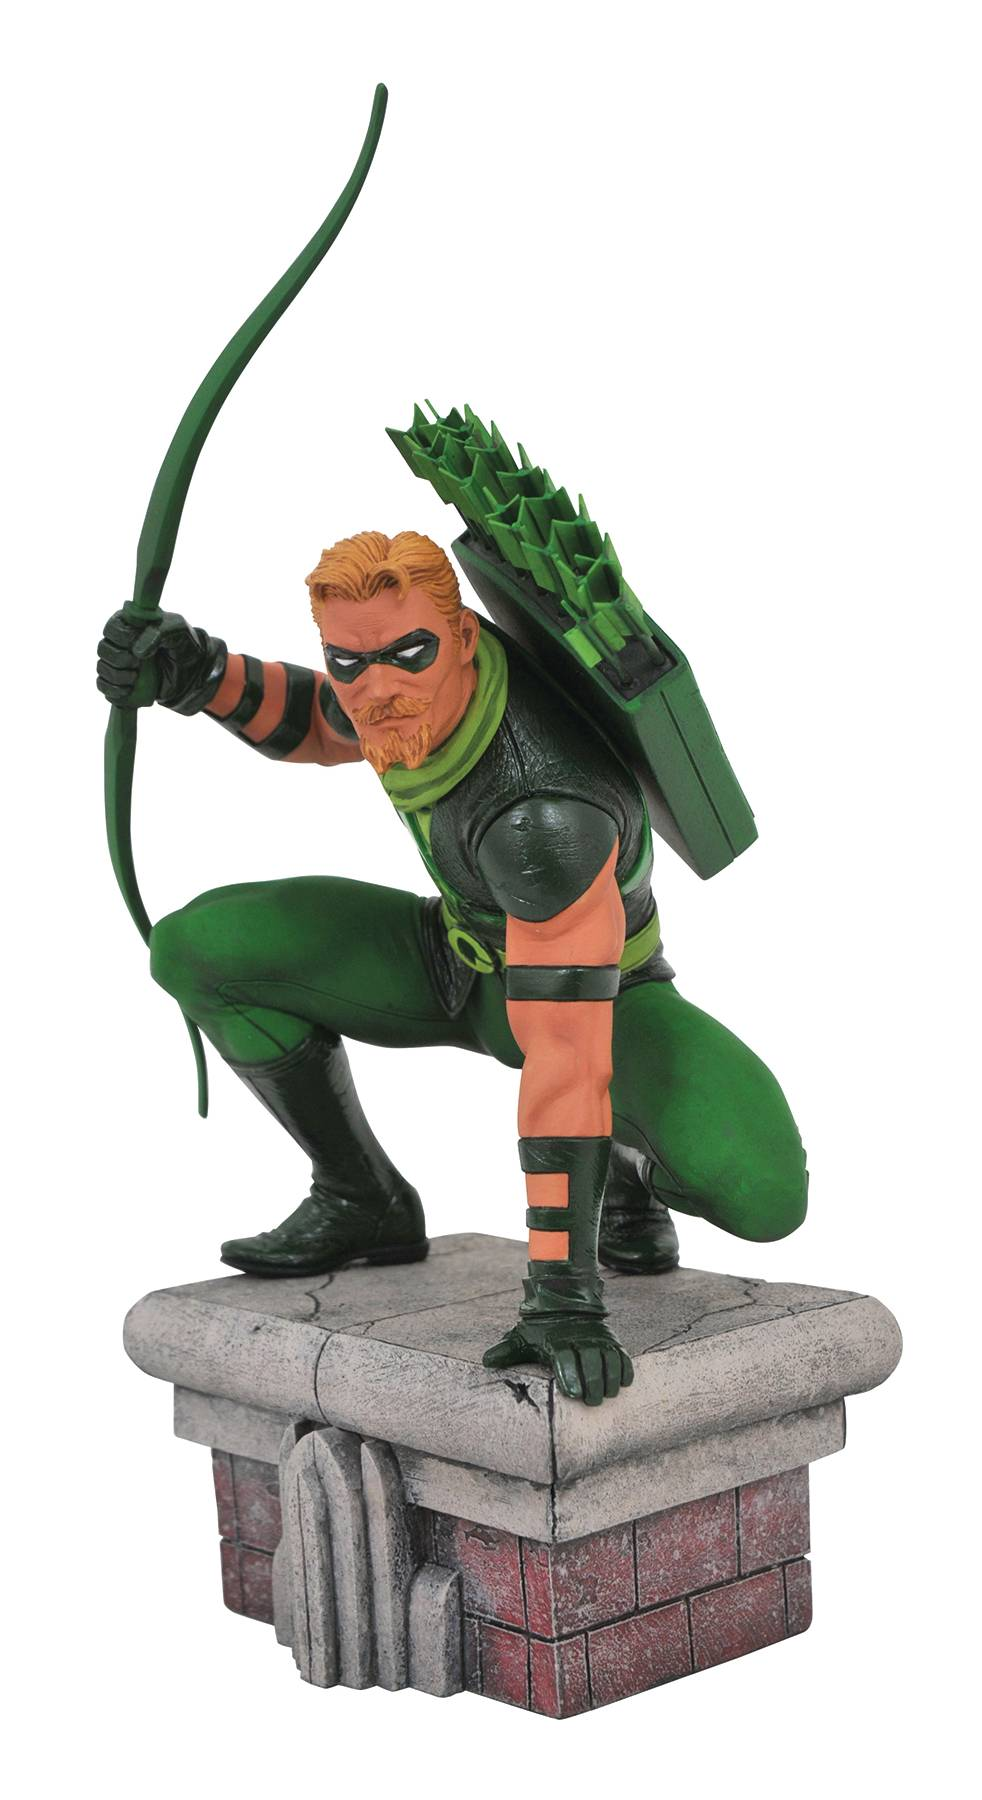 Diamond DC Comics Gallery Green Arrow Statue